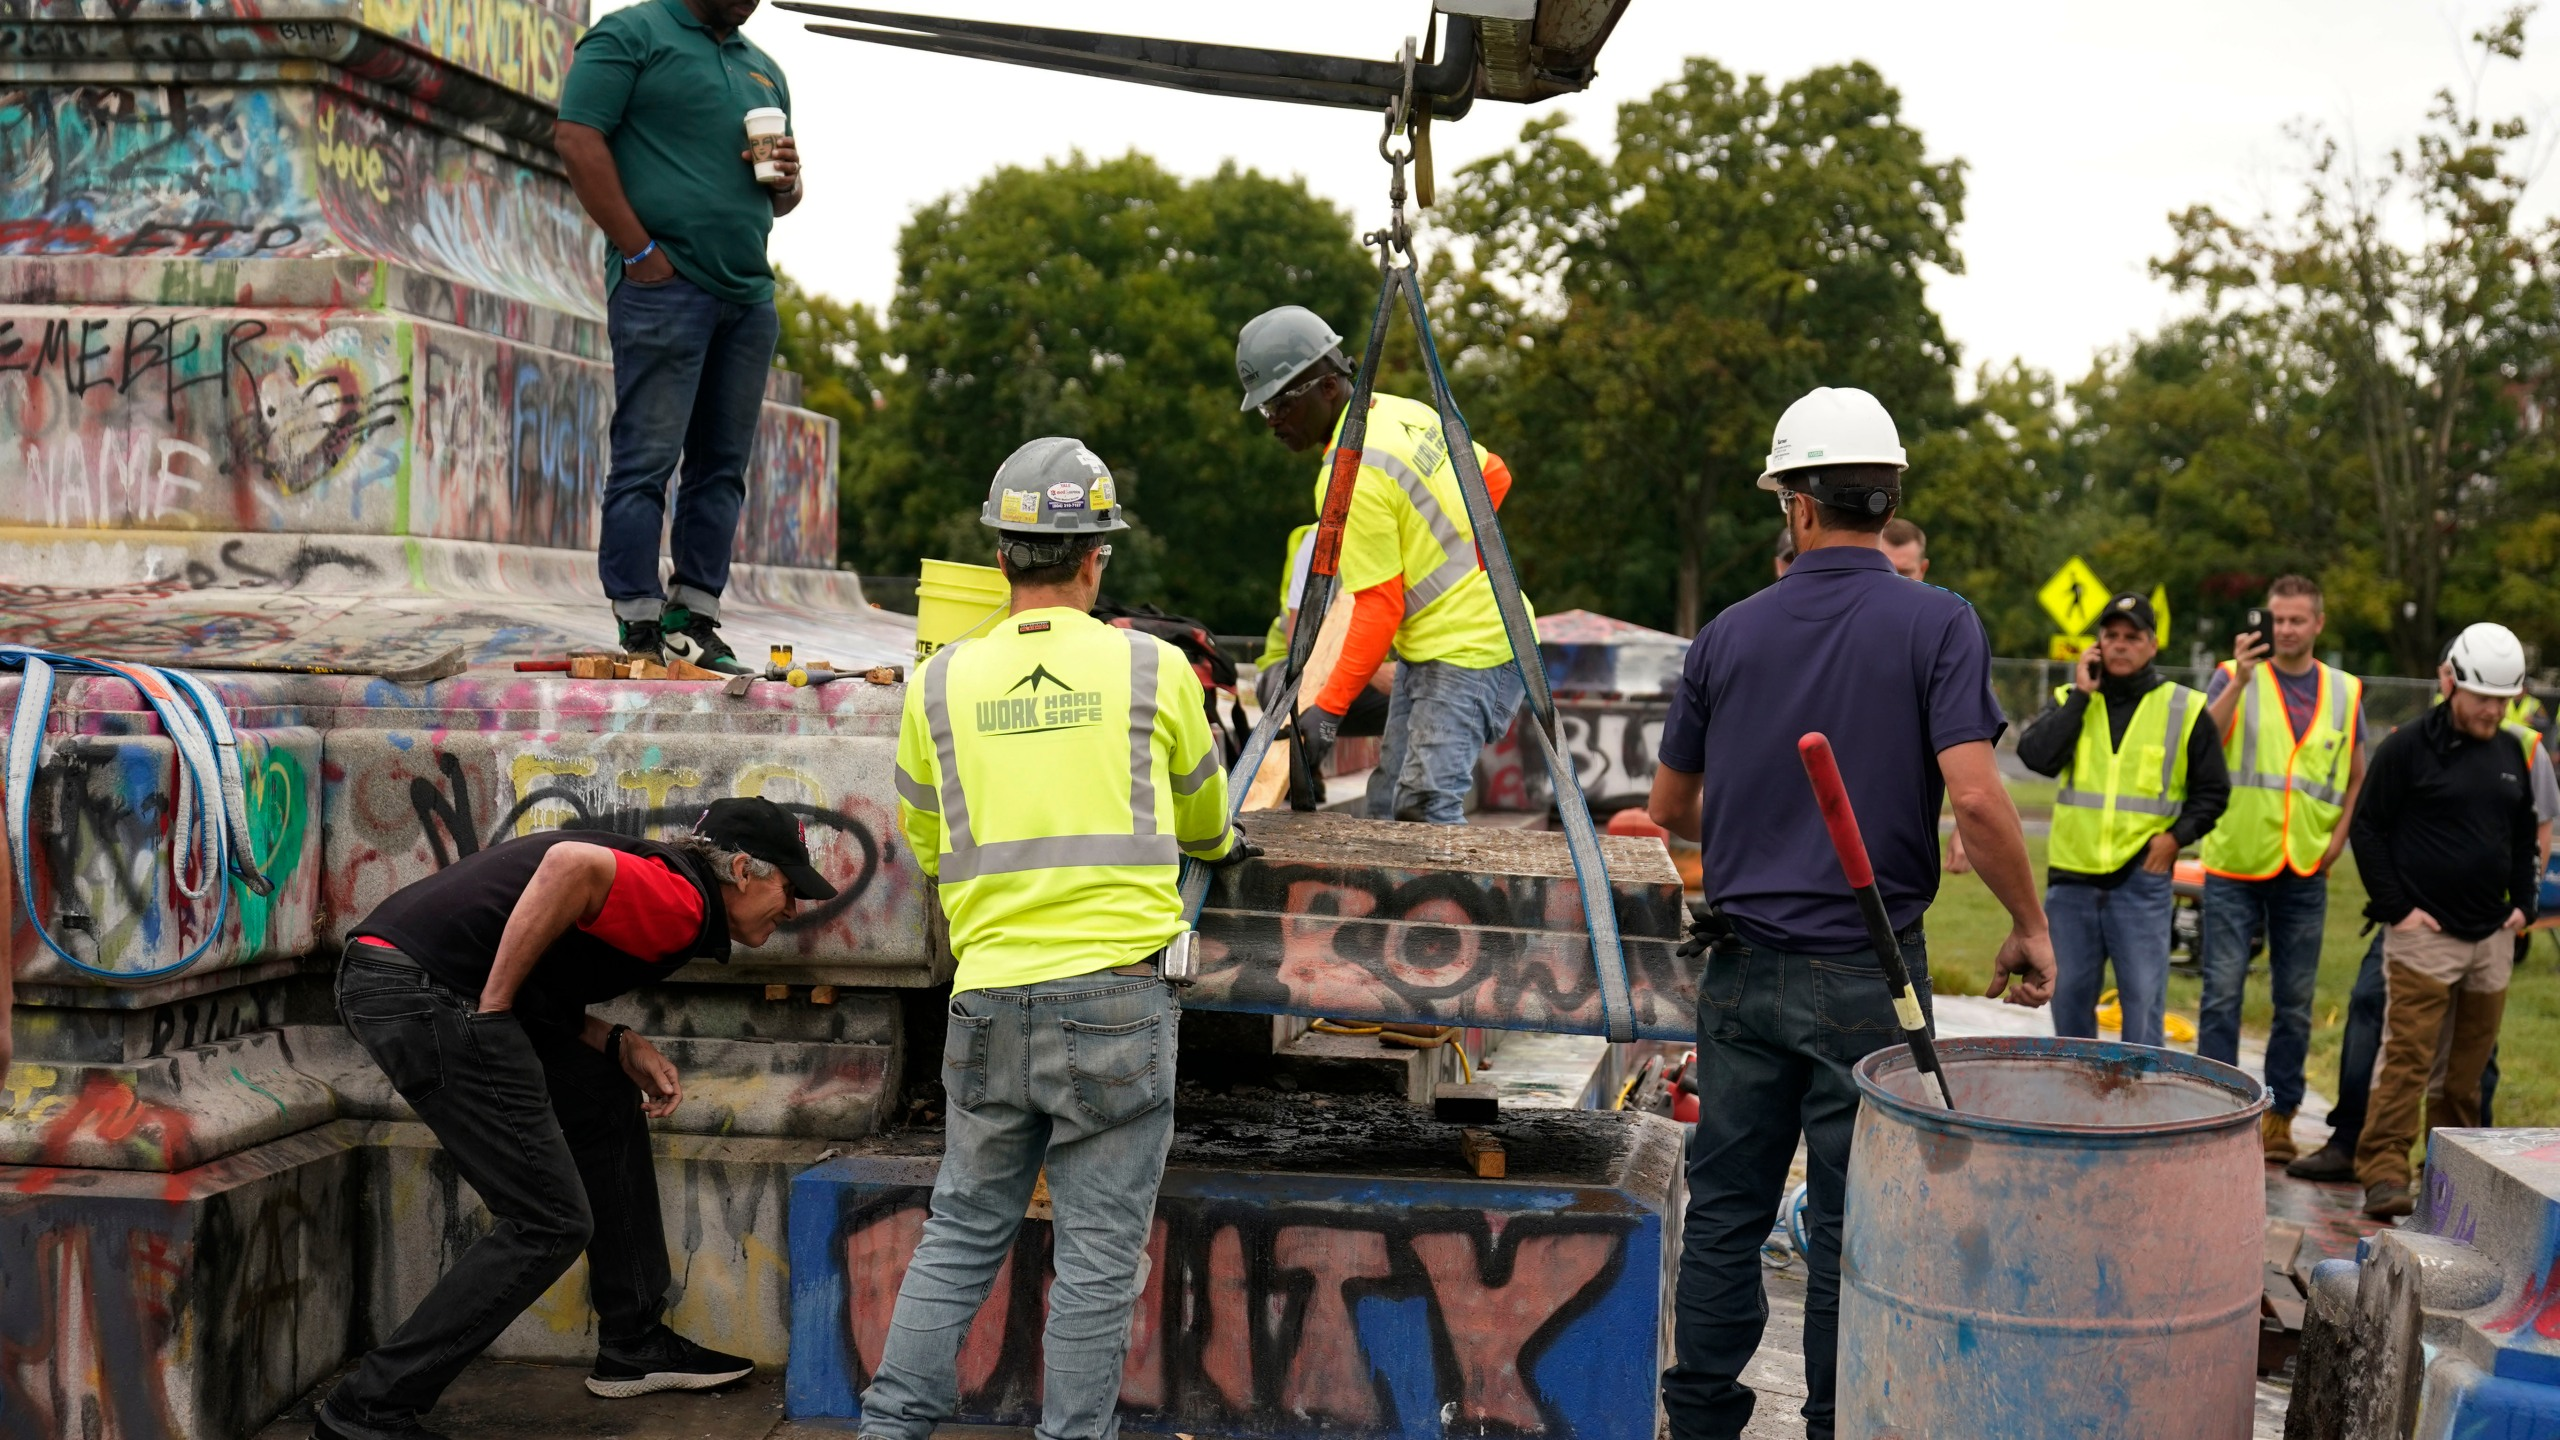 Crews move a section of the base as they attempt to locate a time capsule said to be buried in the base of the statue of on Monument Avenue in Richmond, Va., Thursday, Sept. 9, 2021. The statue was removed from the pedestal on Wednesday. (AP Photo/Steve Helber)